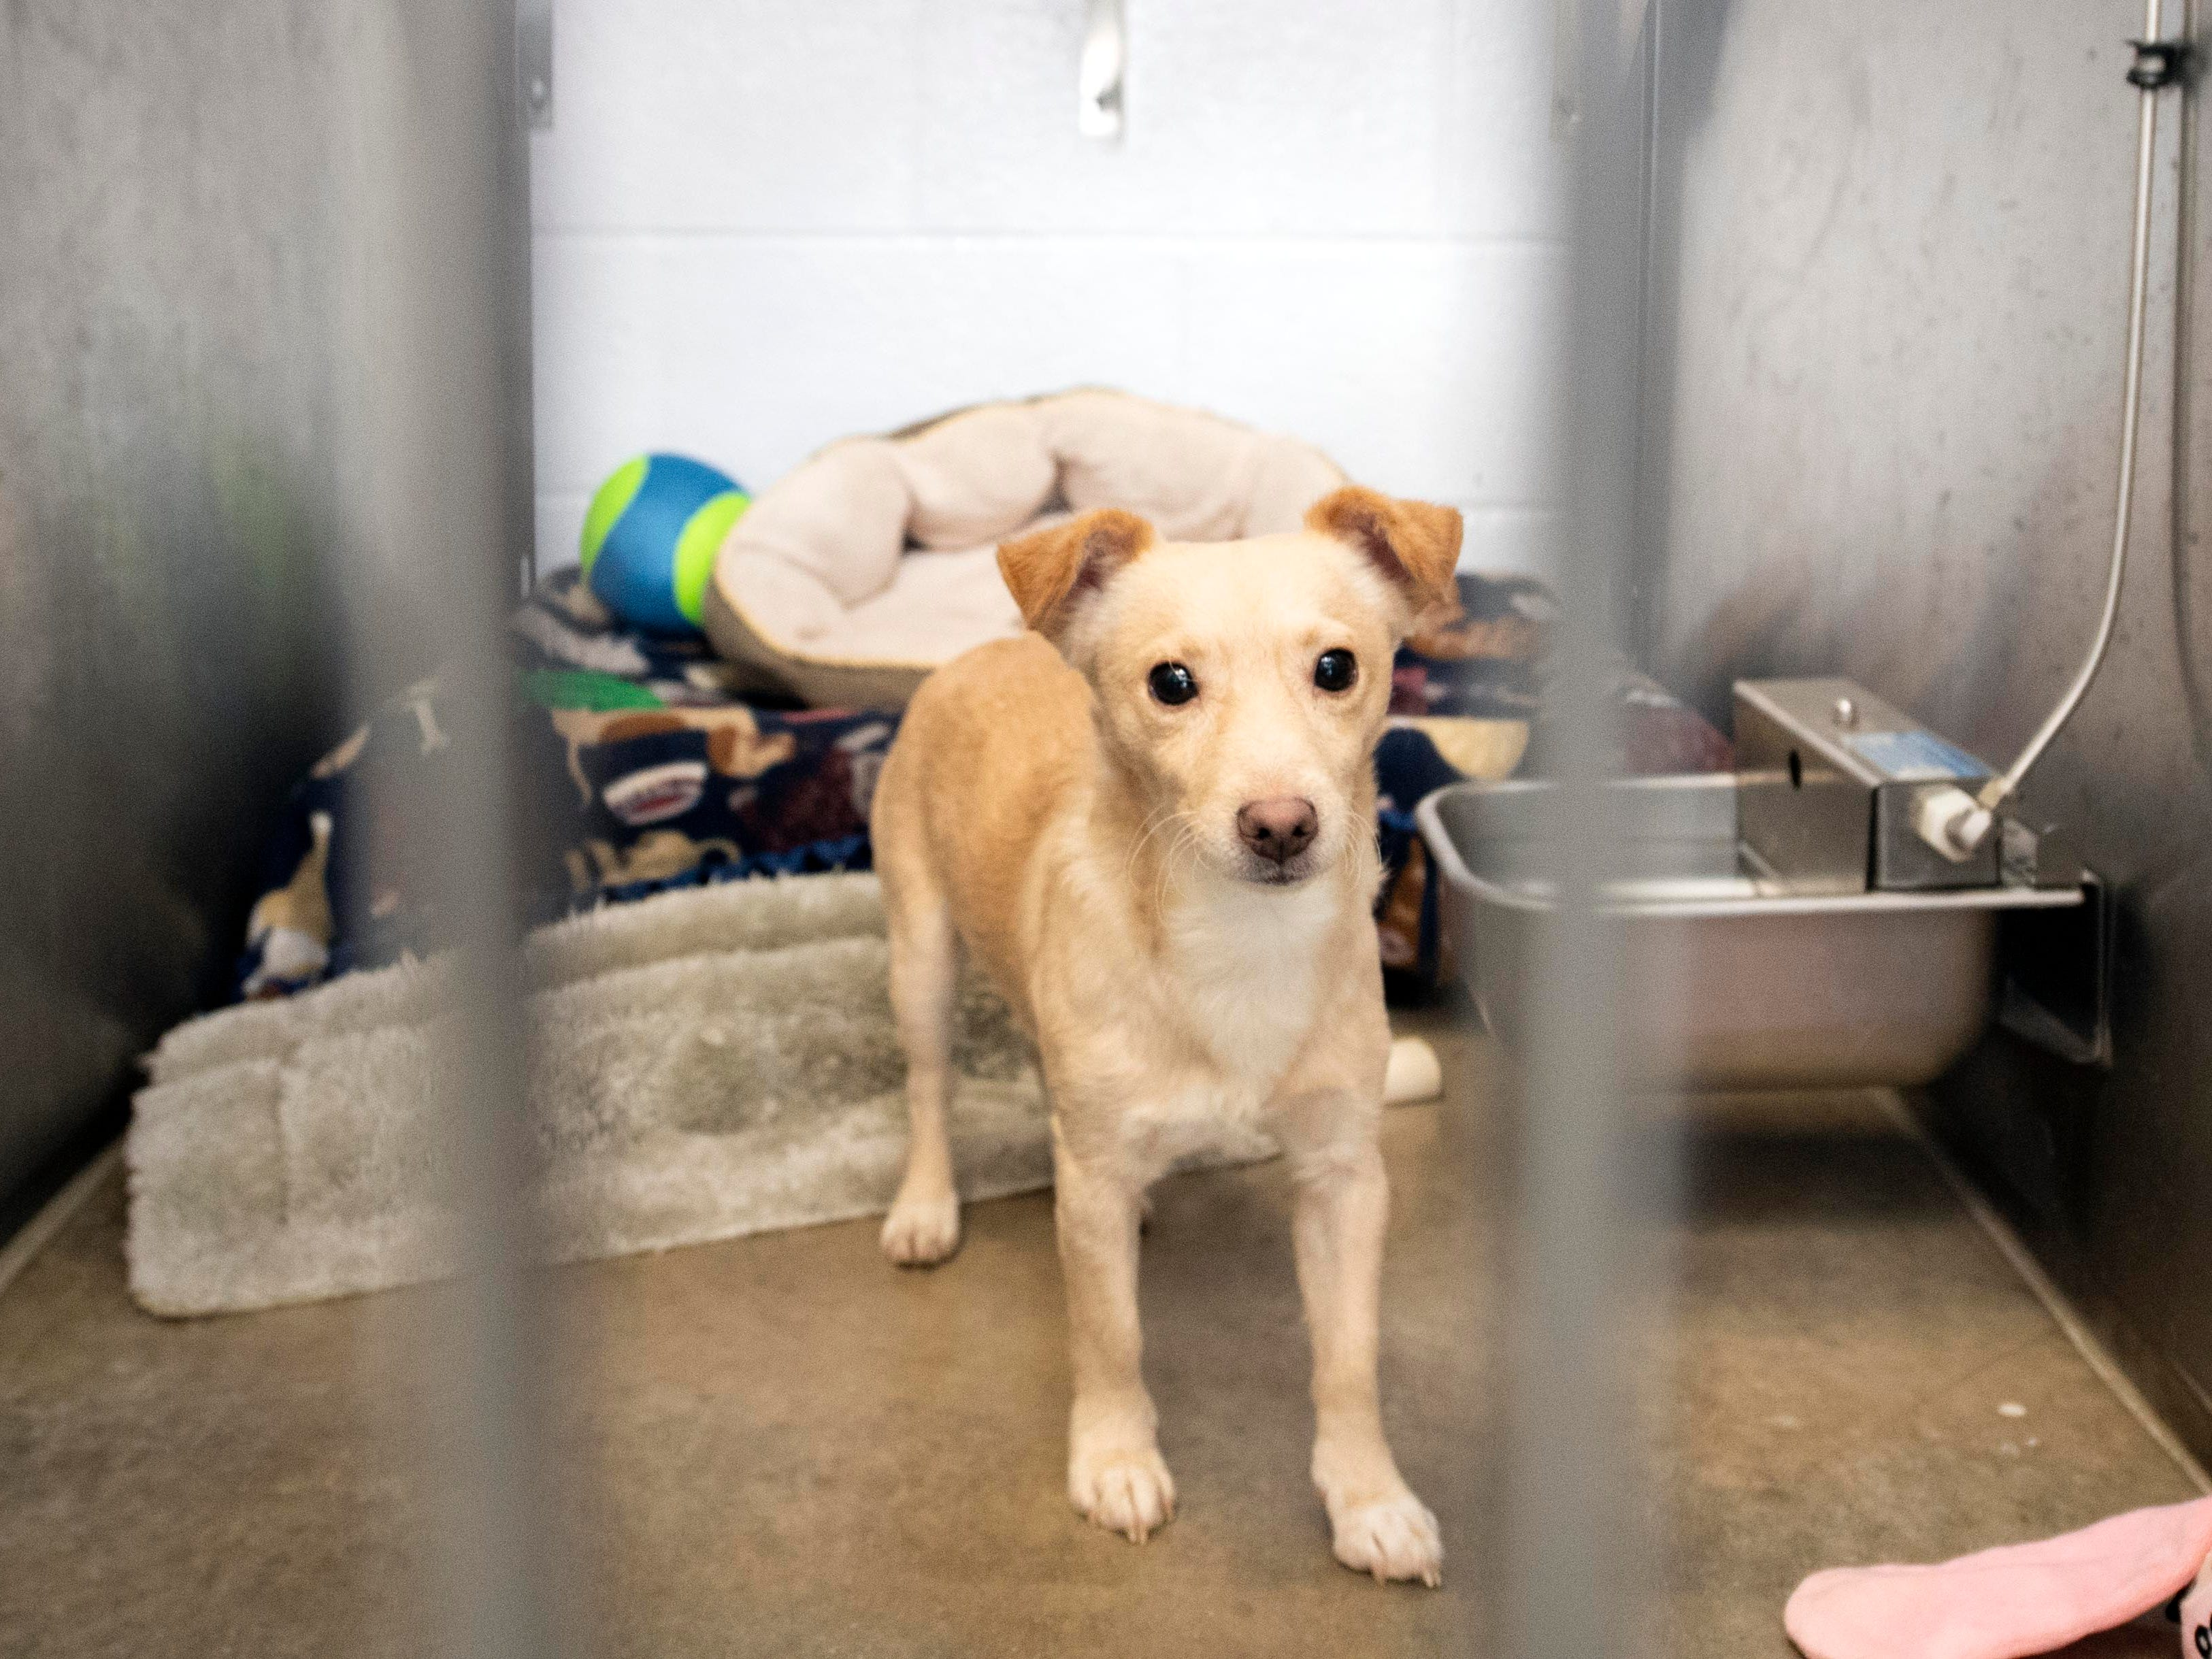 Mischief, a 3-year old terrier mix, was brought into the shelter because the older dog in the home wasn't adjusting well to him.